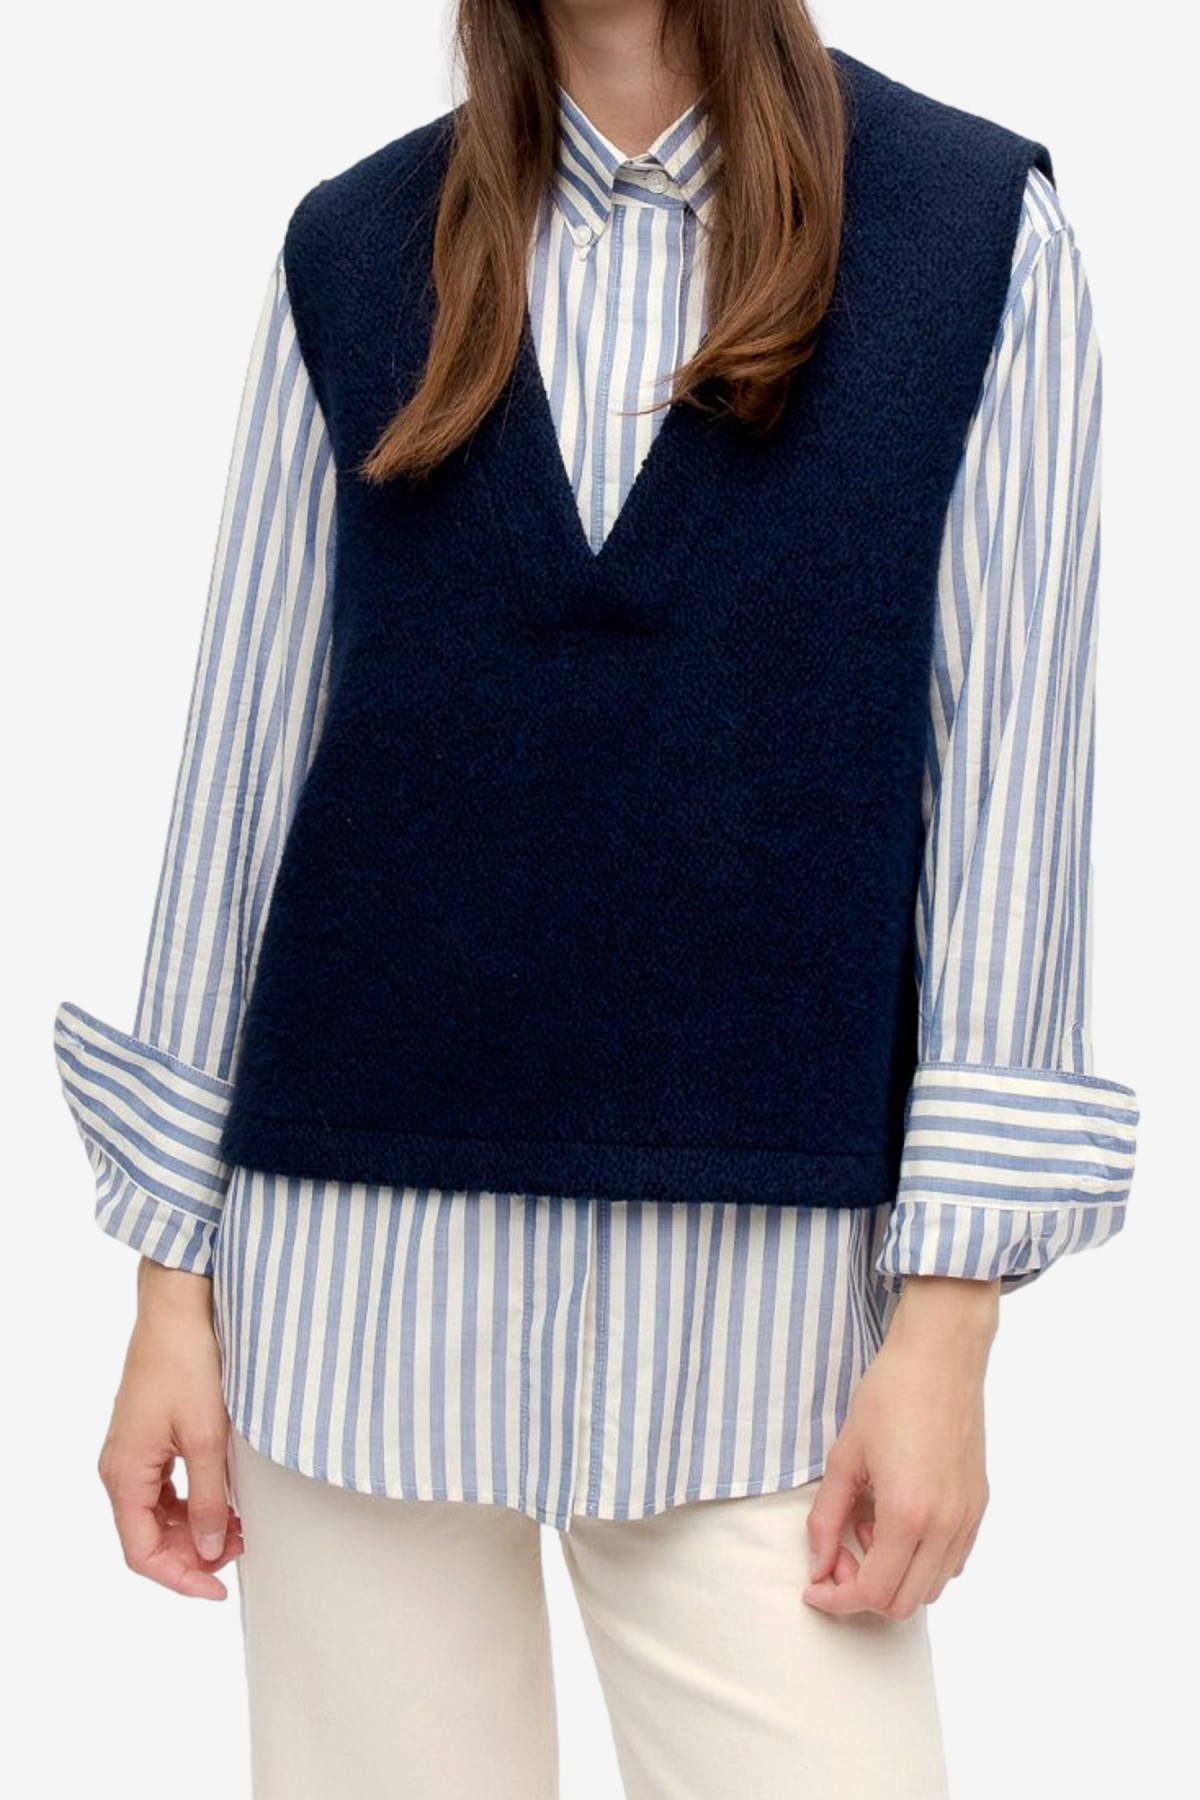 A Kind of Guise Tbili Vest in Curly Navy